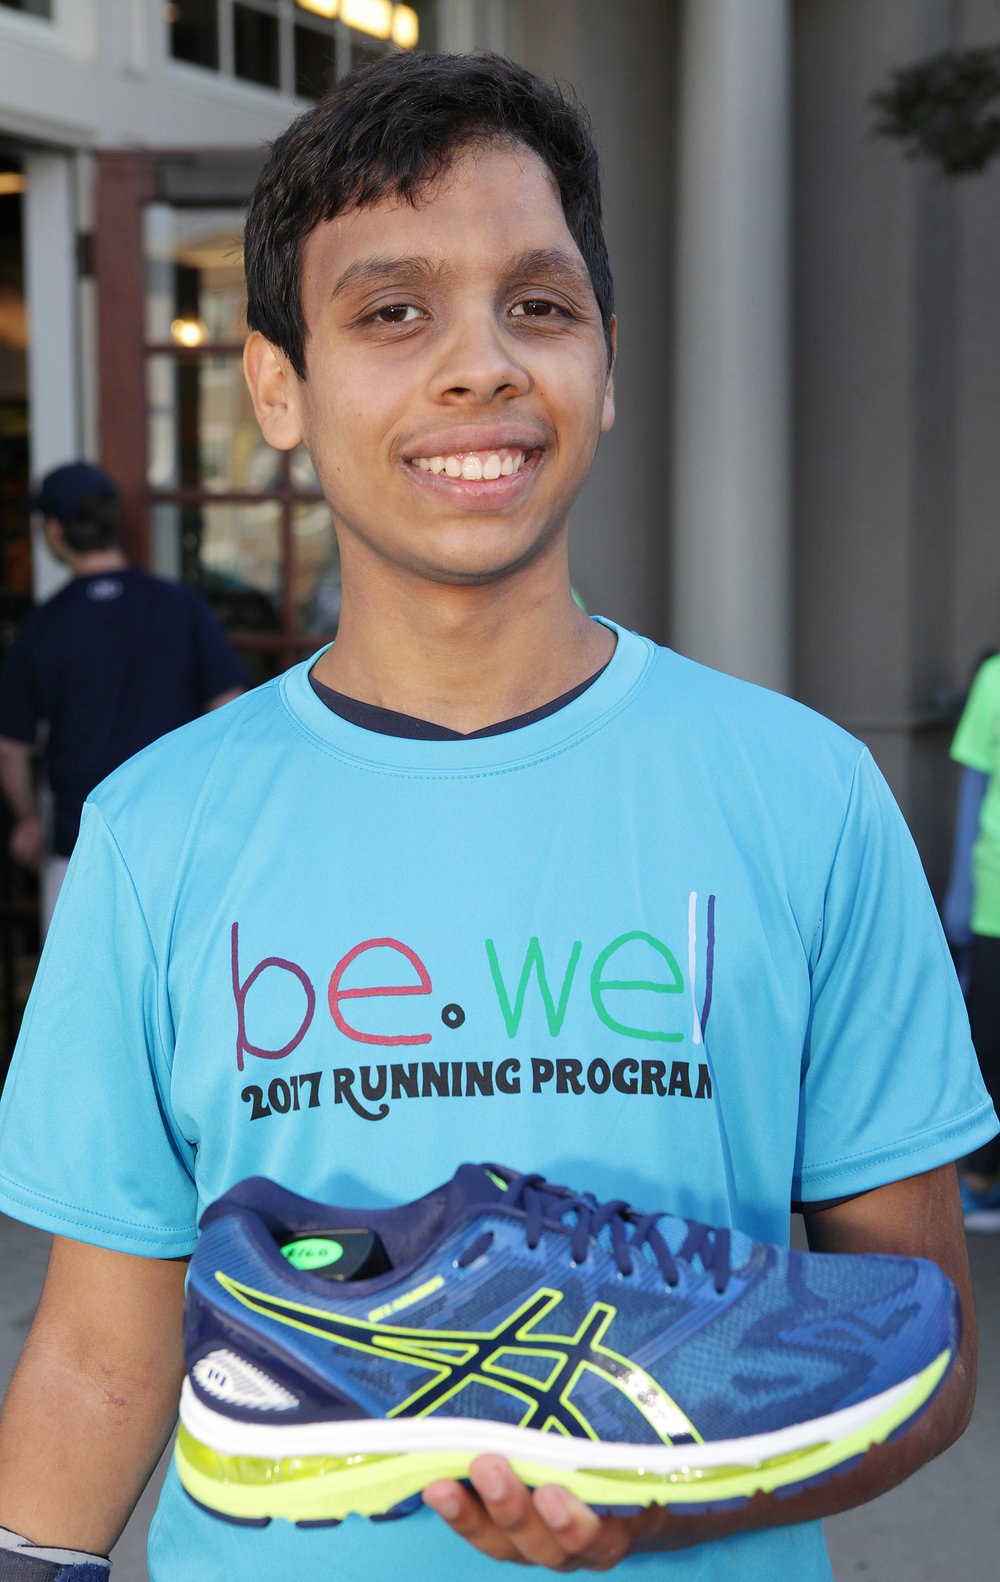 Funds from Design Cincinnati help purchase a new pair of shoes at Fleet Feet Sports for each BeWell runner.